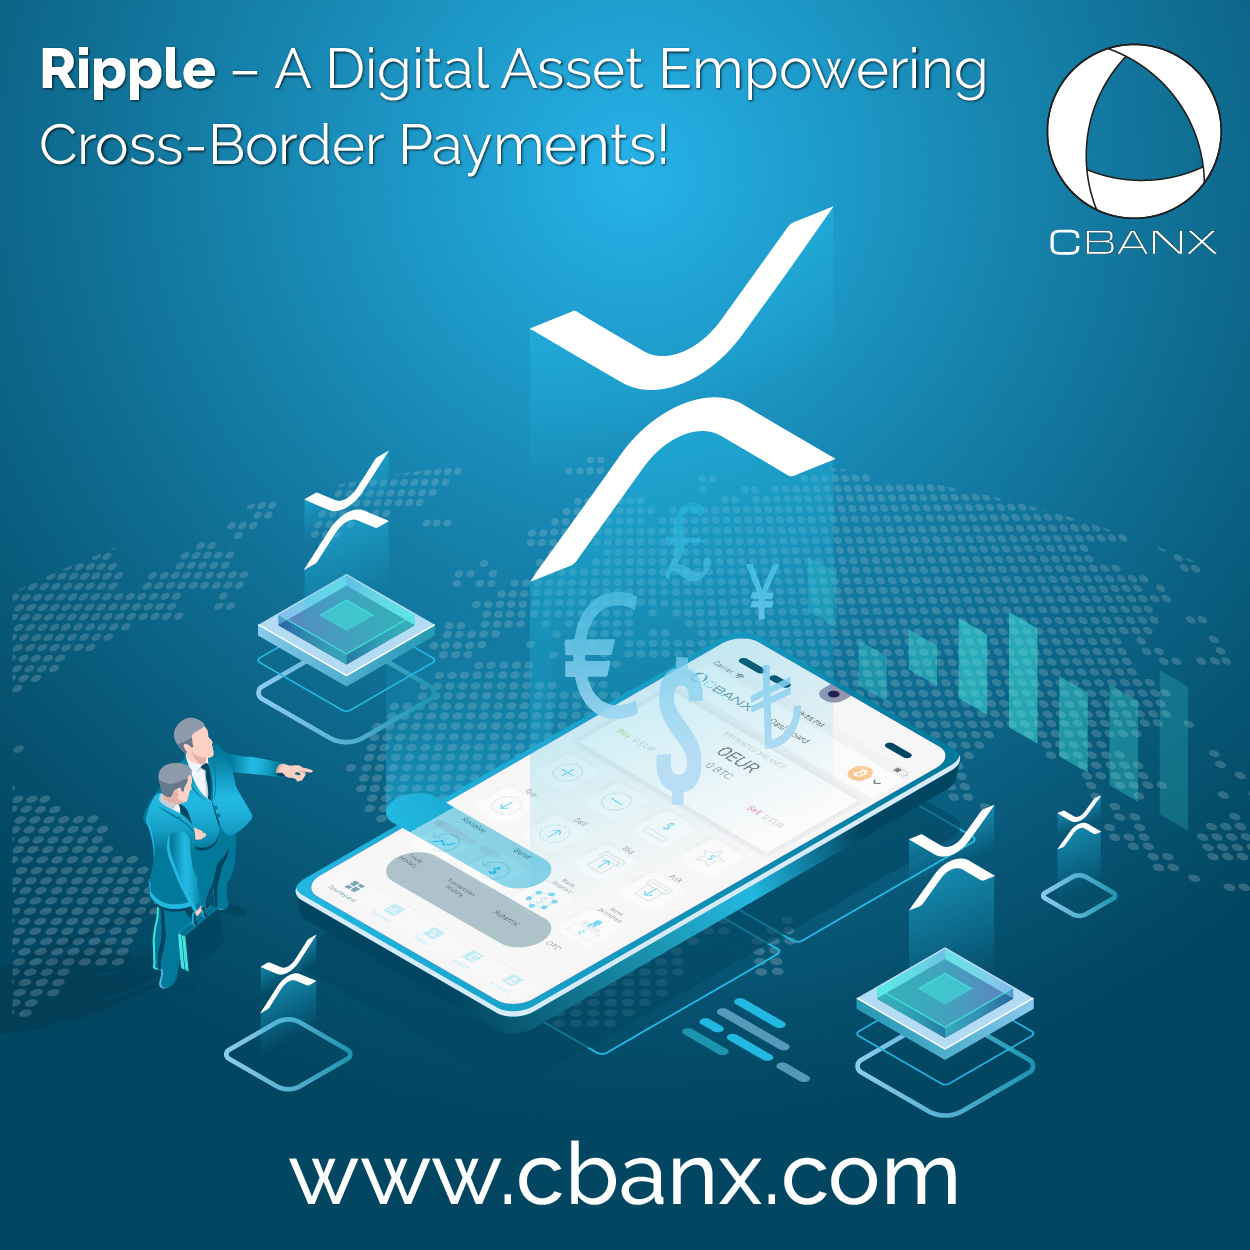 Ripple – A Digital Asset Empowering Cross-Border Payments!